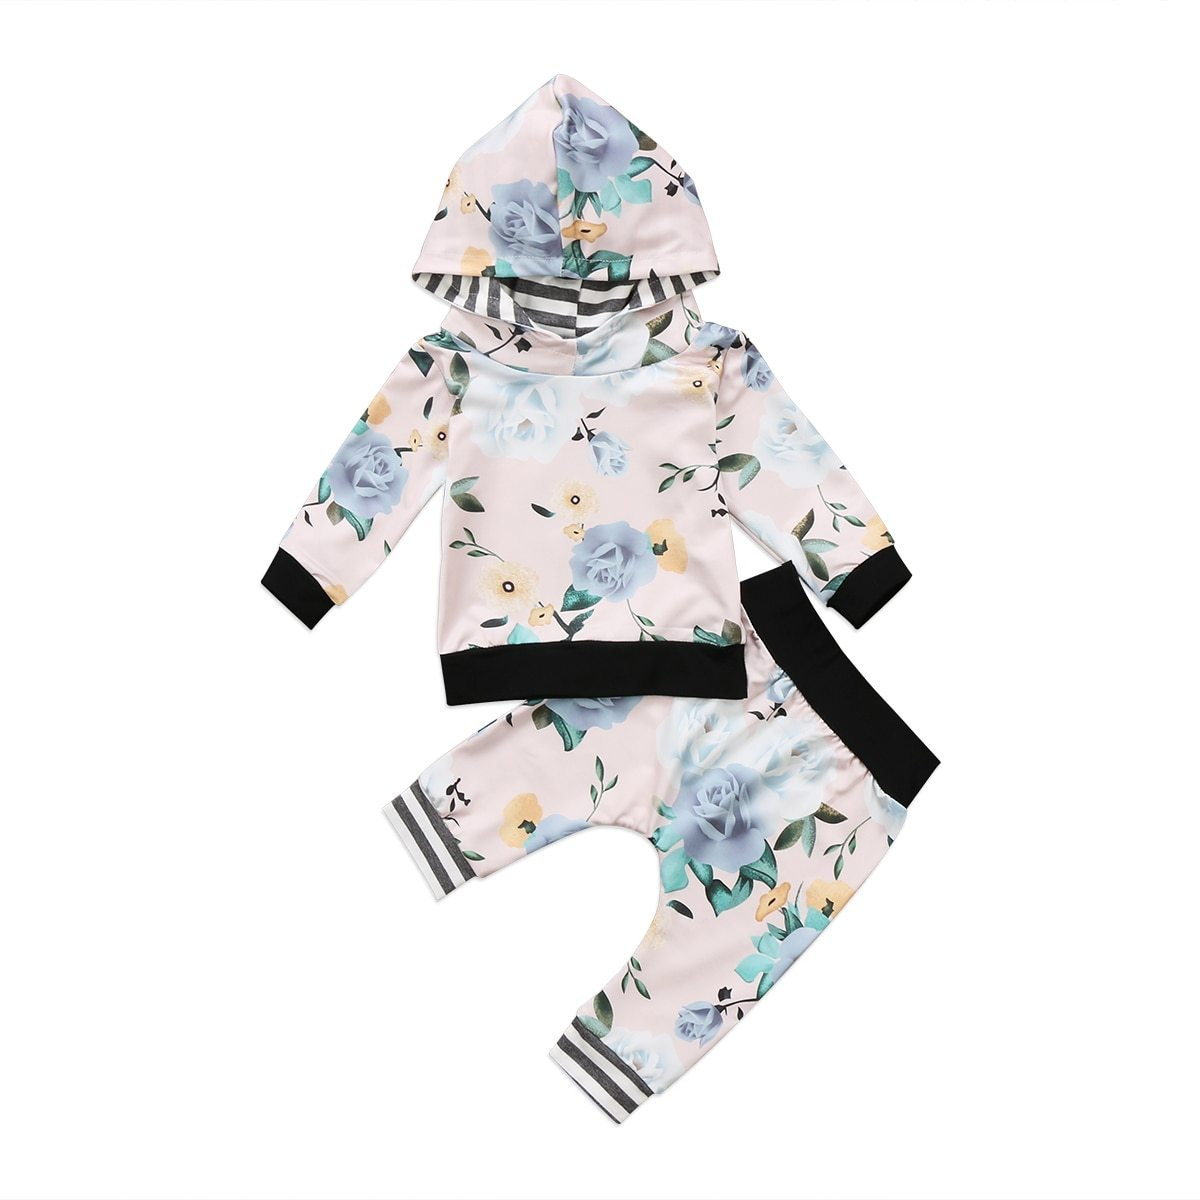 Newborn Toddler Baby Girl Floral Hooded Sweatershirts Top+Pants Outfit Set Clothesdresskily-dresskily